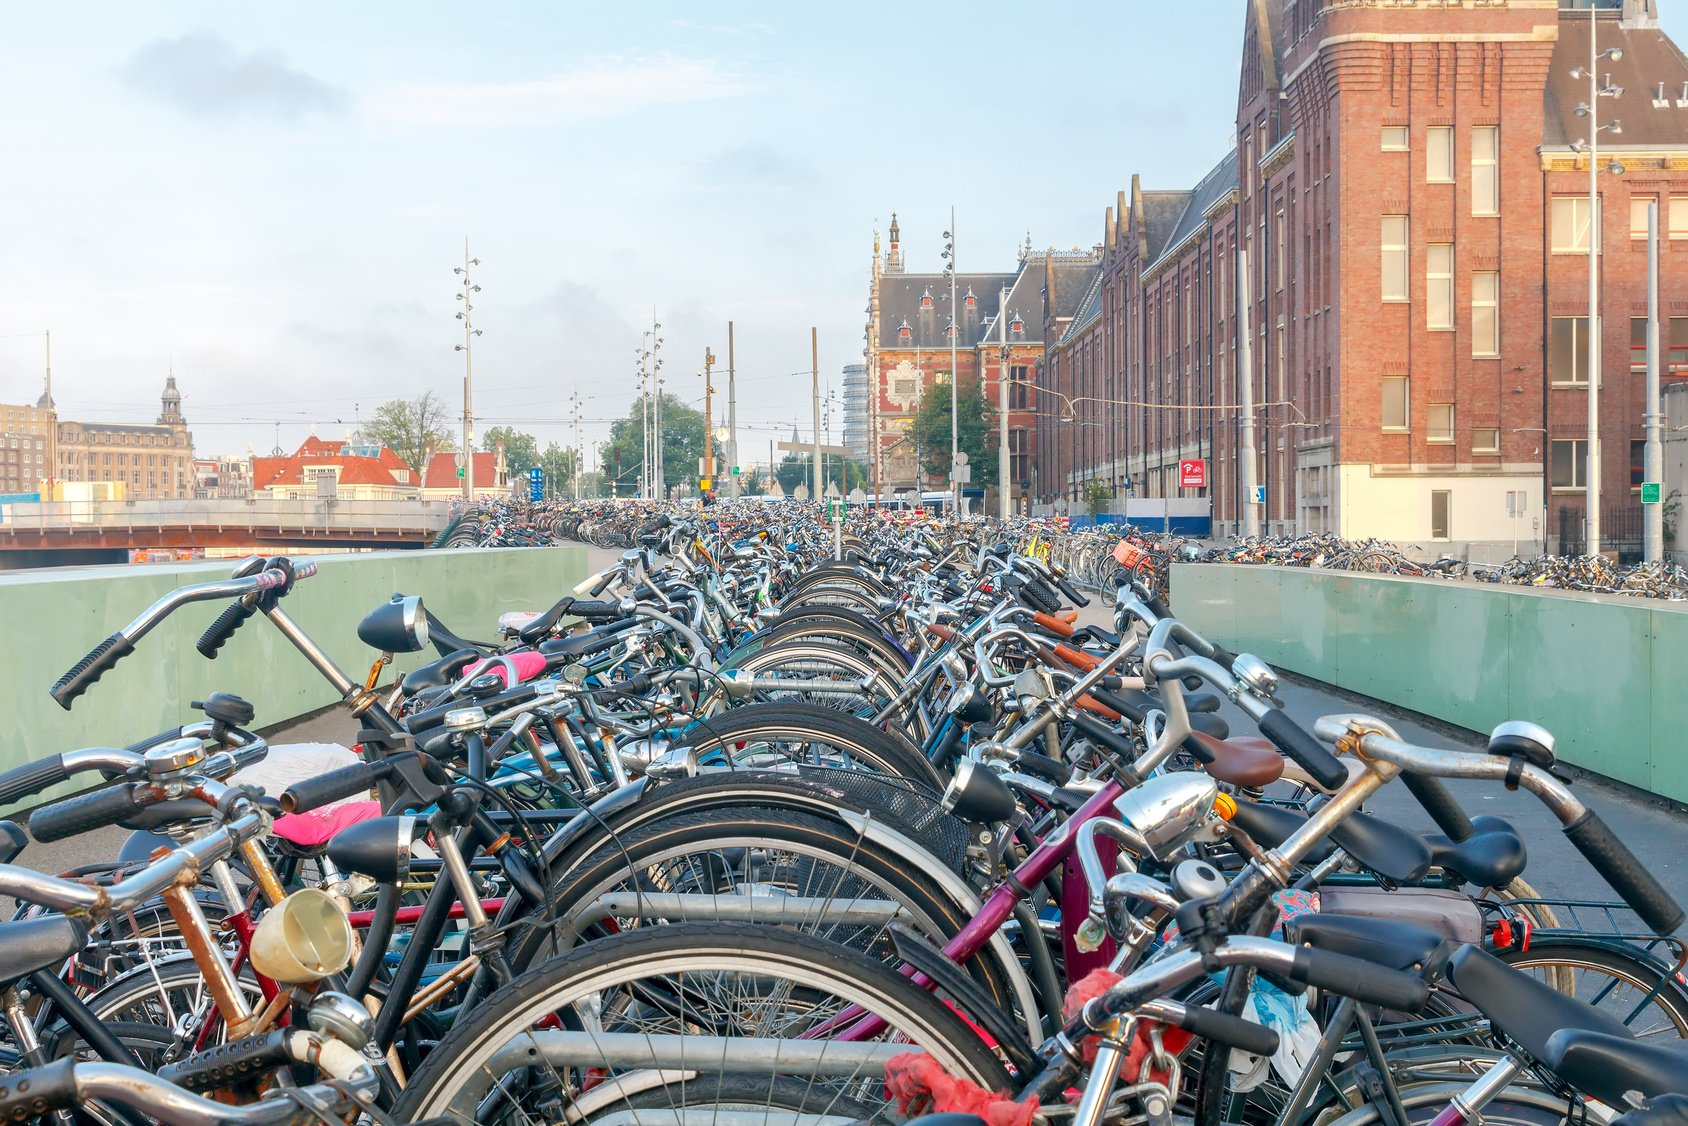 Amsterdam. Bicycle parking in the city center.